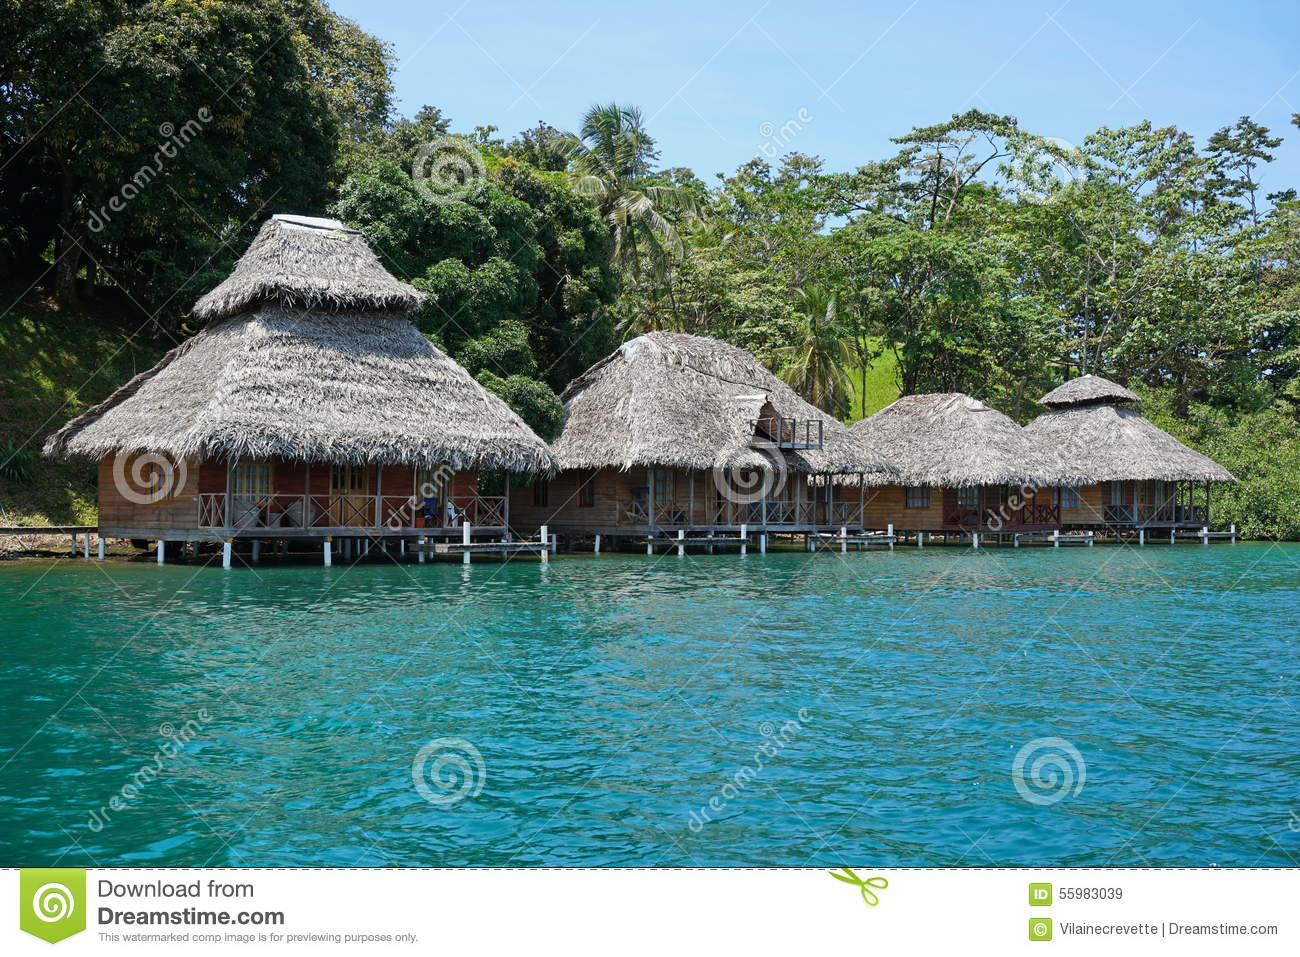 Tropical Resort With Thatched Bungalows Over Water Stock Photo - Image ...